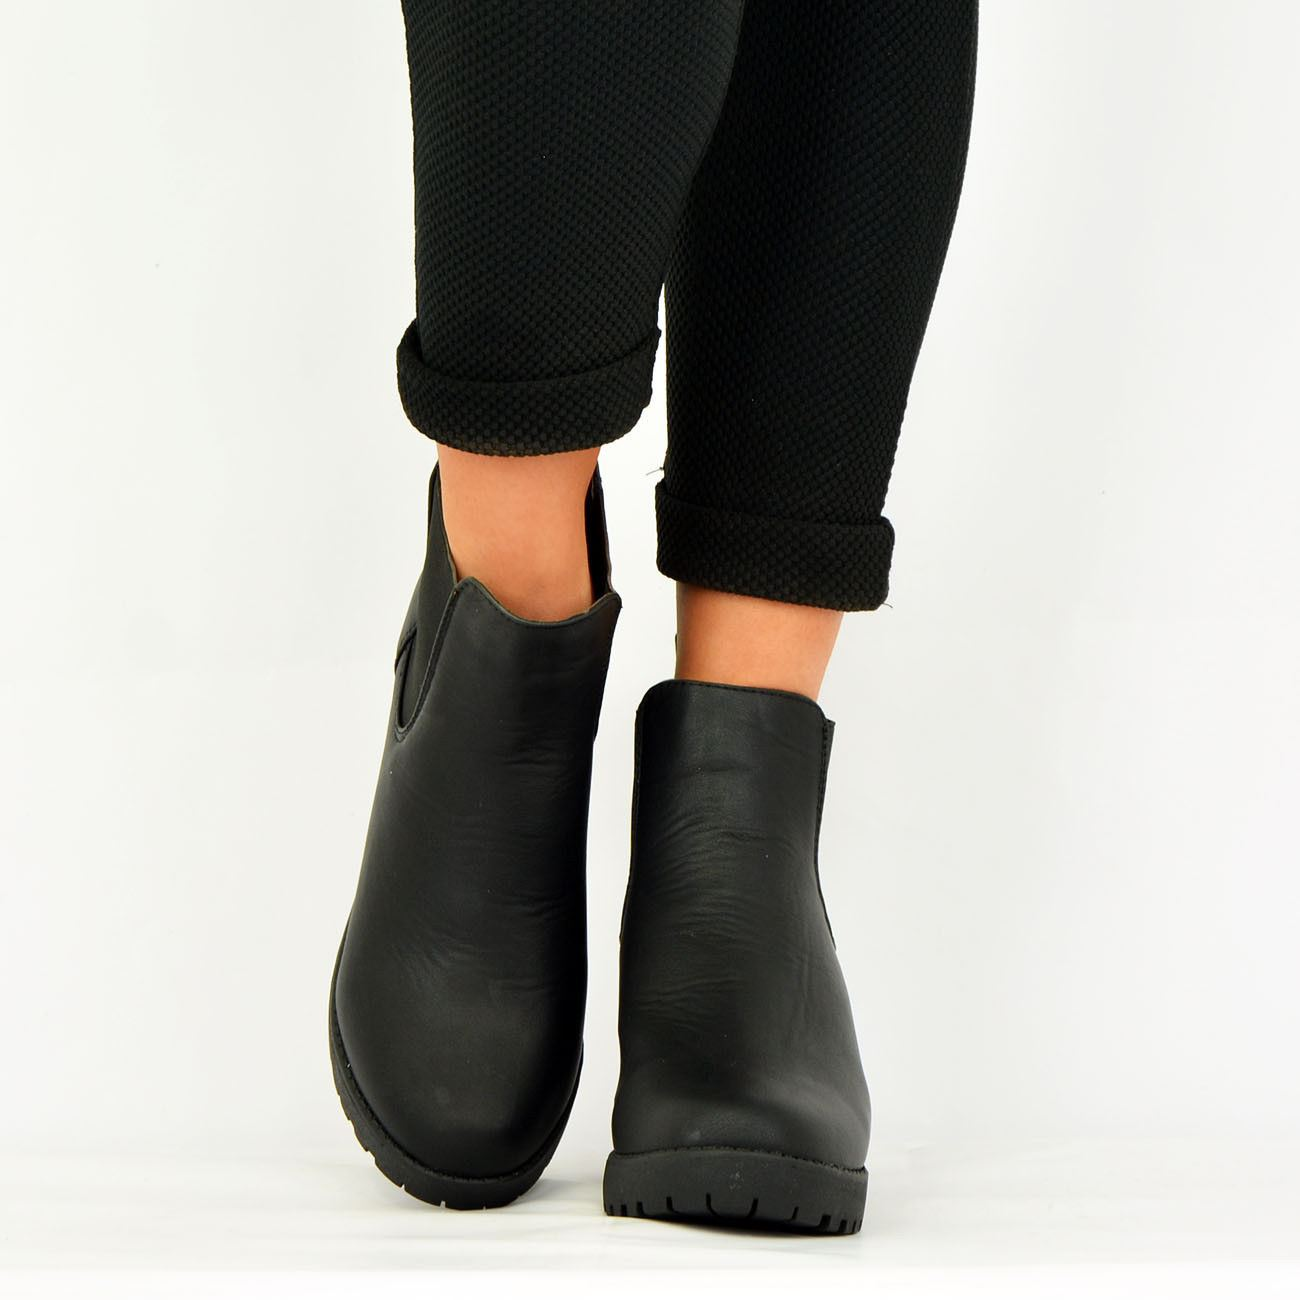 LADIES-WOMENS-ANKLE-CHELSEA-BOOTS-CHUNKY-BLOCK-HEELS-PLATFORM-SHOES-SIZE-UK-3-8 thumbnail 6